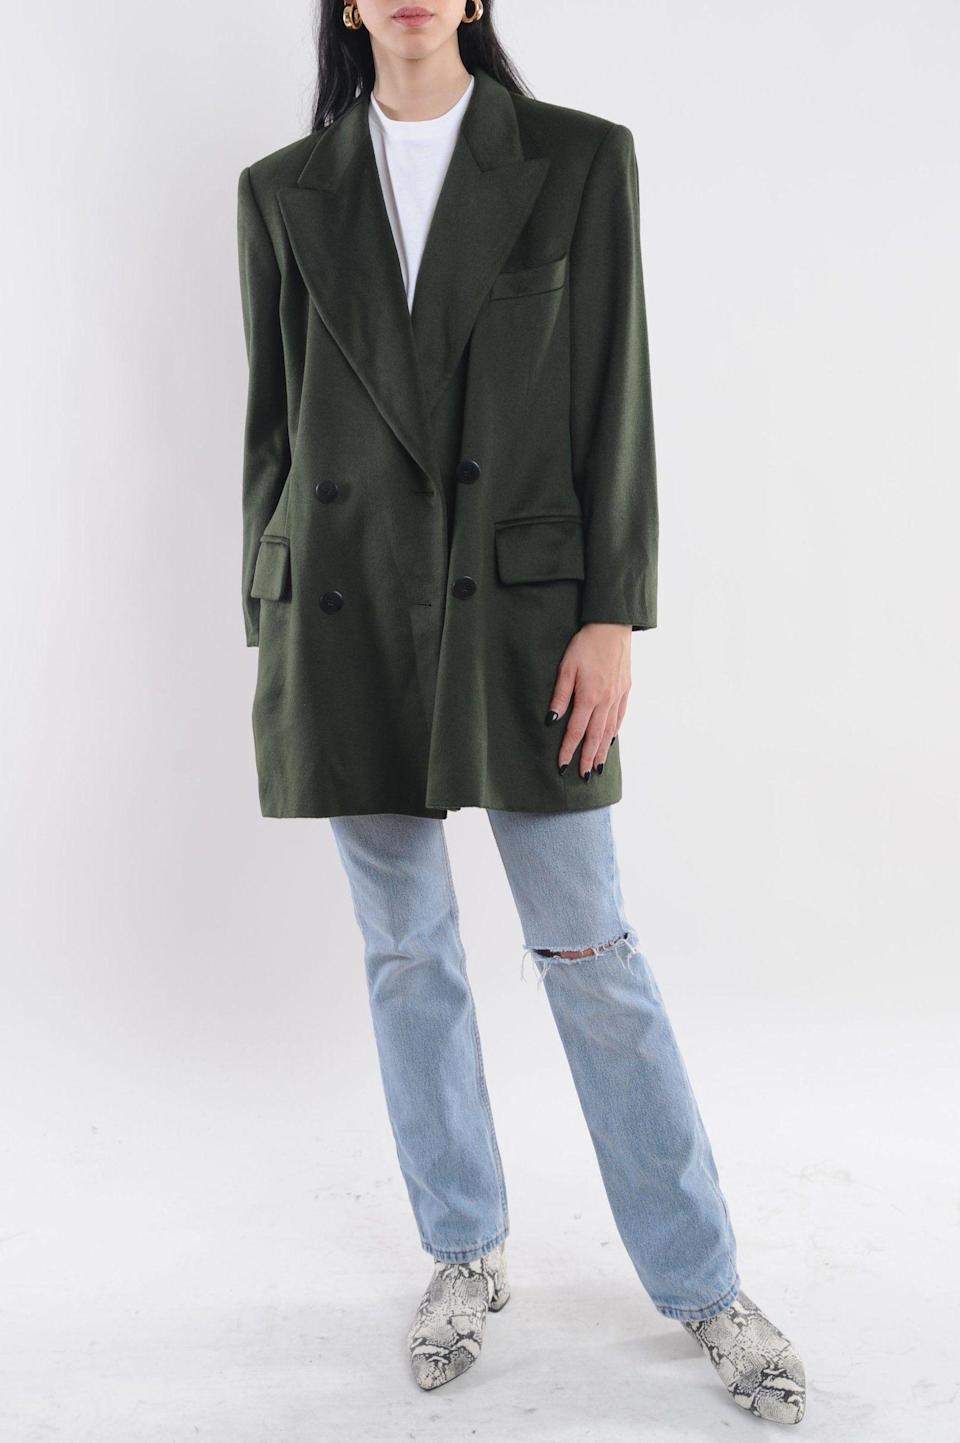 "<p><strong>The Vintage Twin </strong></p><p>thevintagetwin.com</p><p><strong>$248.00</strong></p><p><a href=""https://www.thevintagetwin.com/collections/denim-jackets-blazers/products/escada-green-cashmere-blazer"" rel=""nofollow noopener"" target=""_blank"" data-ylk=""slk:Shop Now"" class=""link rapid-noclick-resp"">Shop Now</a></p><p><a href=""http://www.thevintagetwin.com/"" rel=""nofollow noopener"" target=""_blank"" data-ylk=""slk:The Vintage Twin"" class=""link rapid-noclick-resp"">The Vintage Twin</a> was started by two twins sisters (get it?) and there are a few locations in NYC. If you don't live in the city, however, you can scroll through tons of awesome finds on their website. Plus, 10% of the proceeds go to charity.</p>"